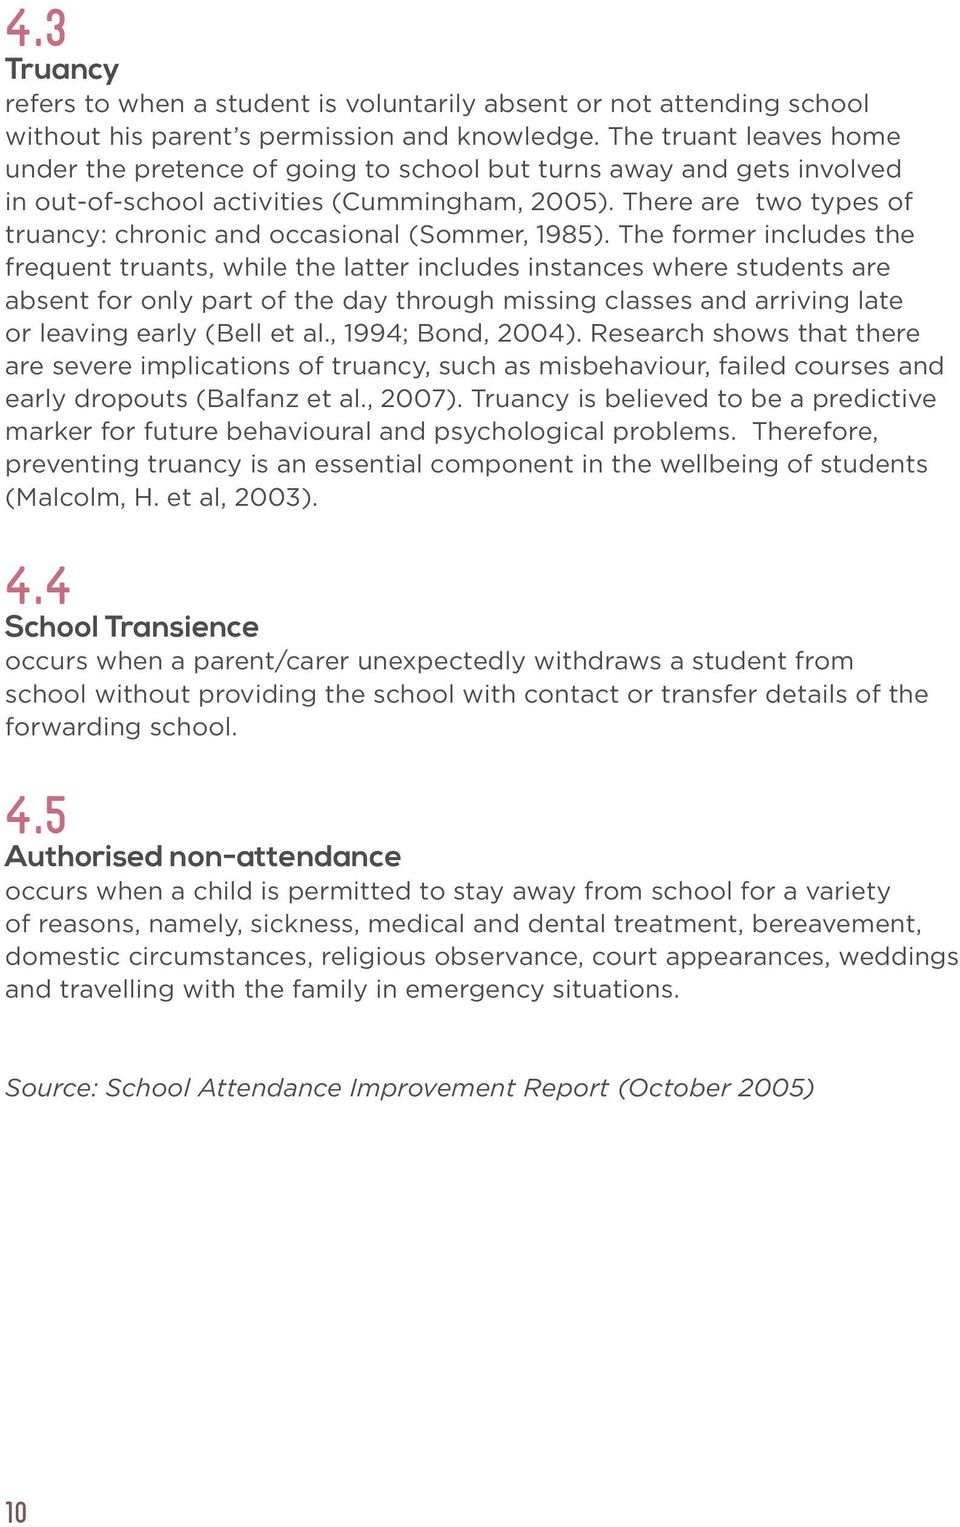 There are two types of truancy: chronic and occasional (Sommer, 1985).